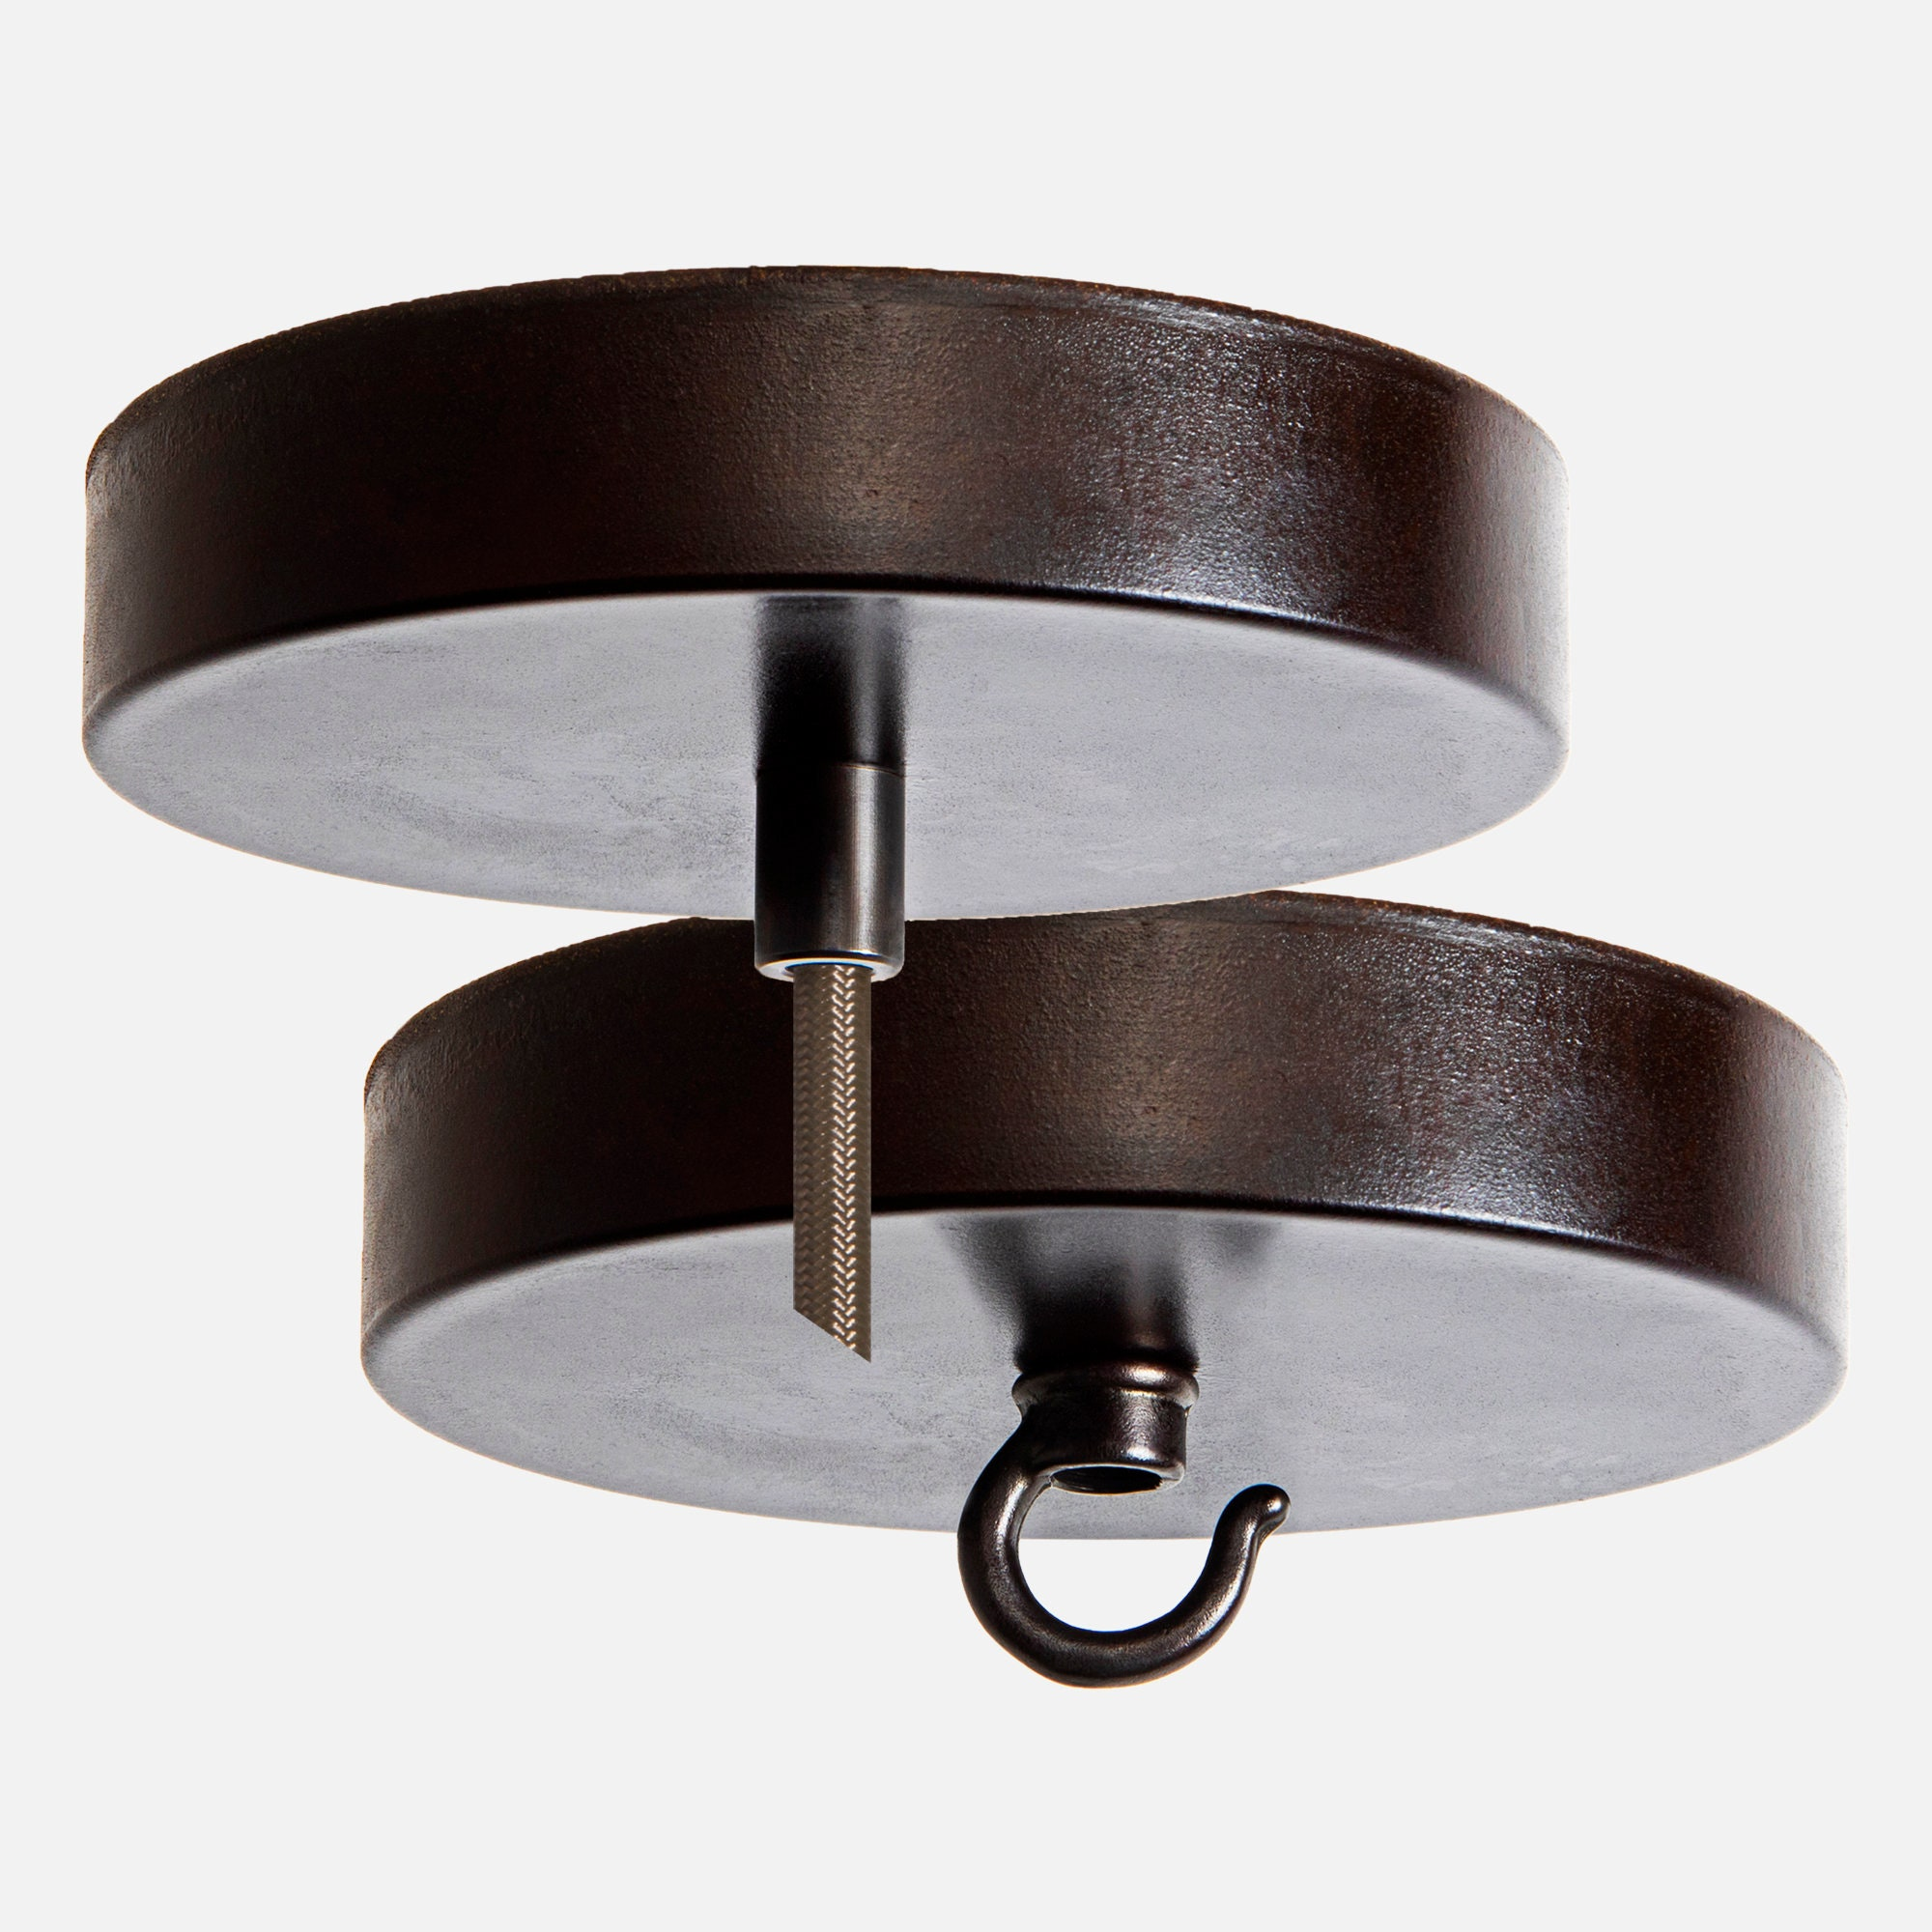 Ceiling Lamp Canopy: Chandelier Canopy Kit Pendant Light Ceiling Canopy Kit